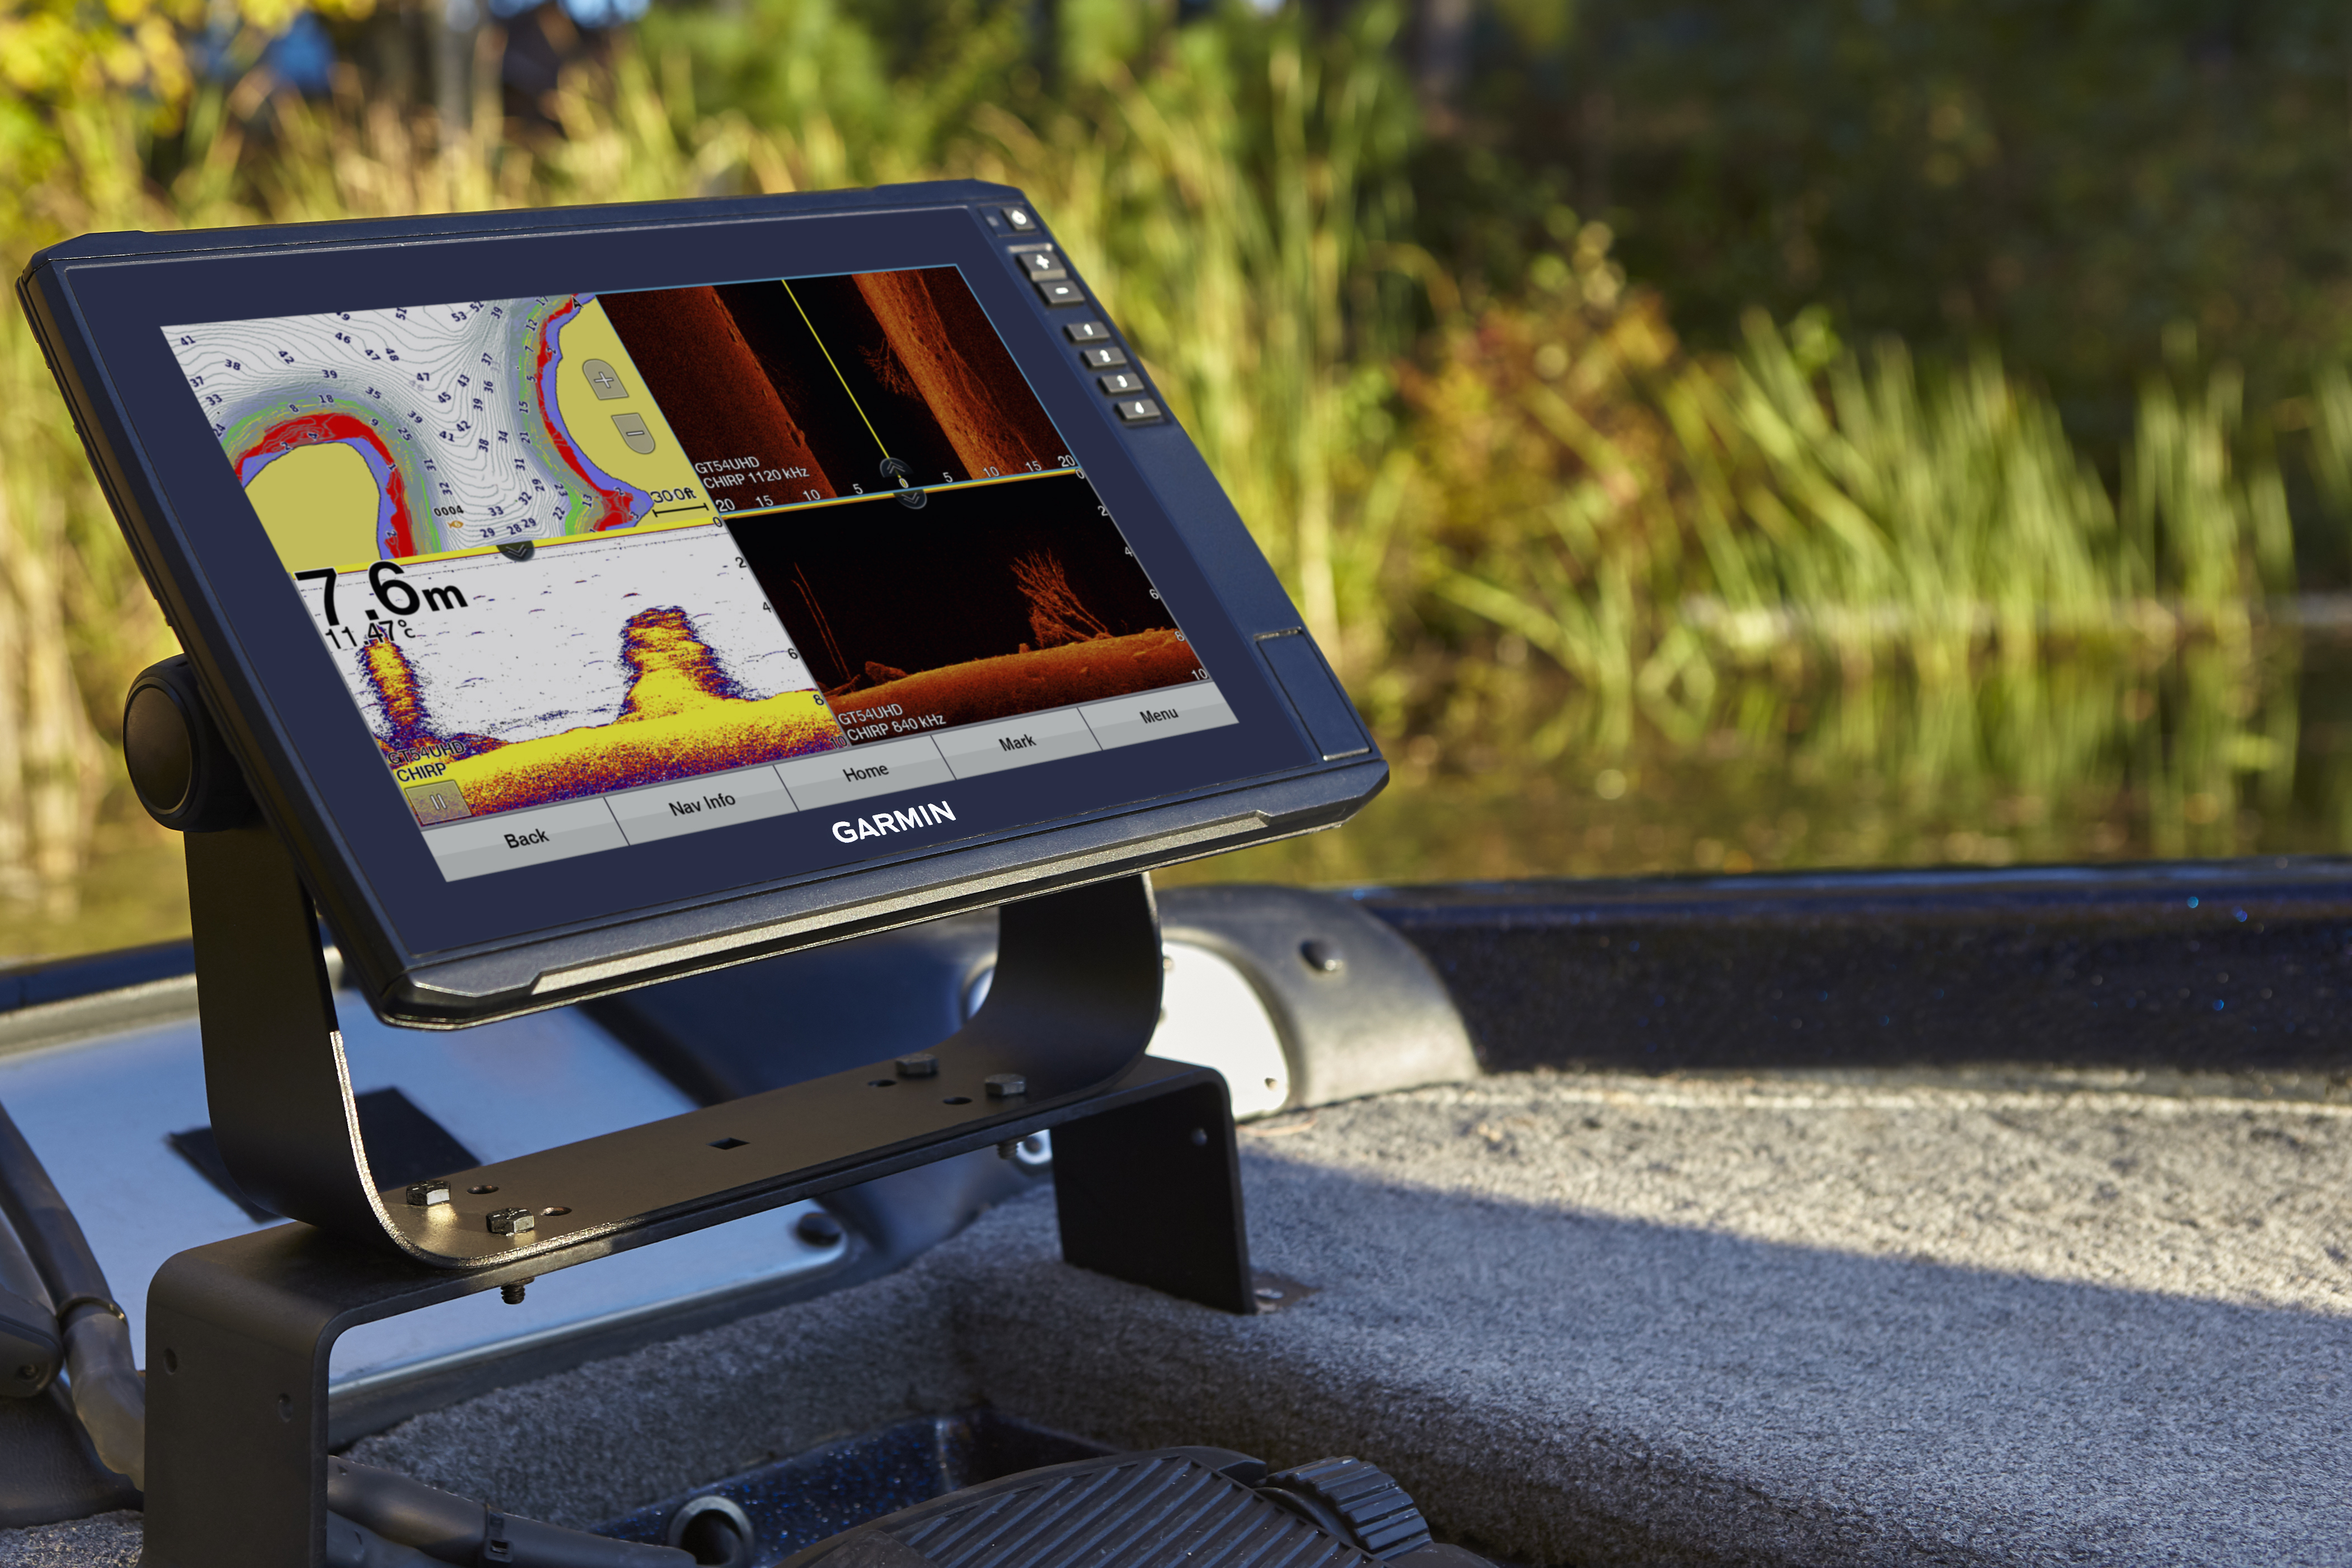 Garmin® introduces the ECHOMAP Ultra series with larger